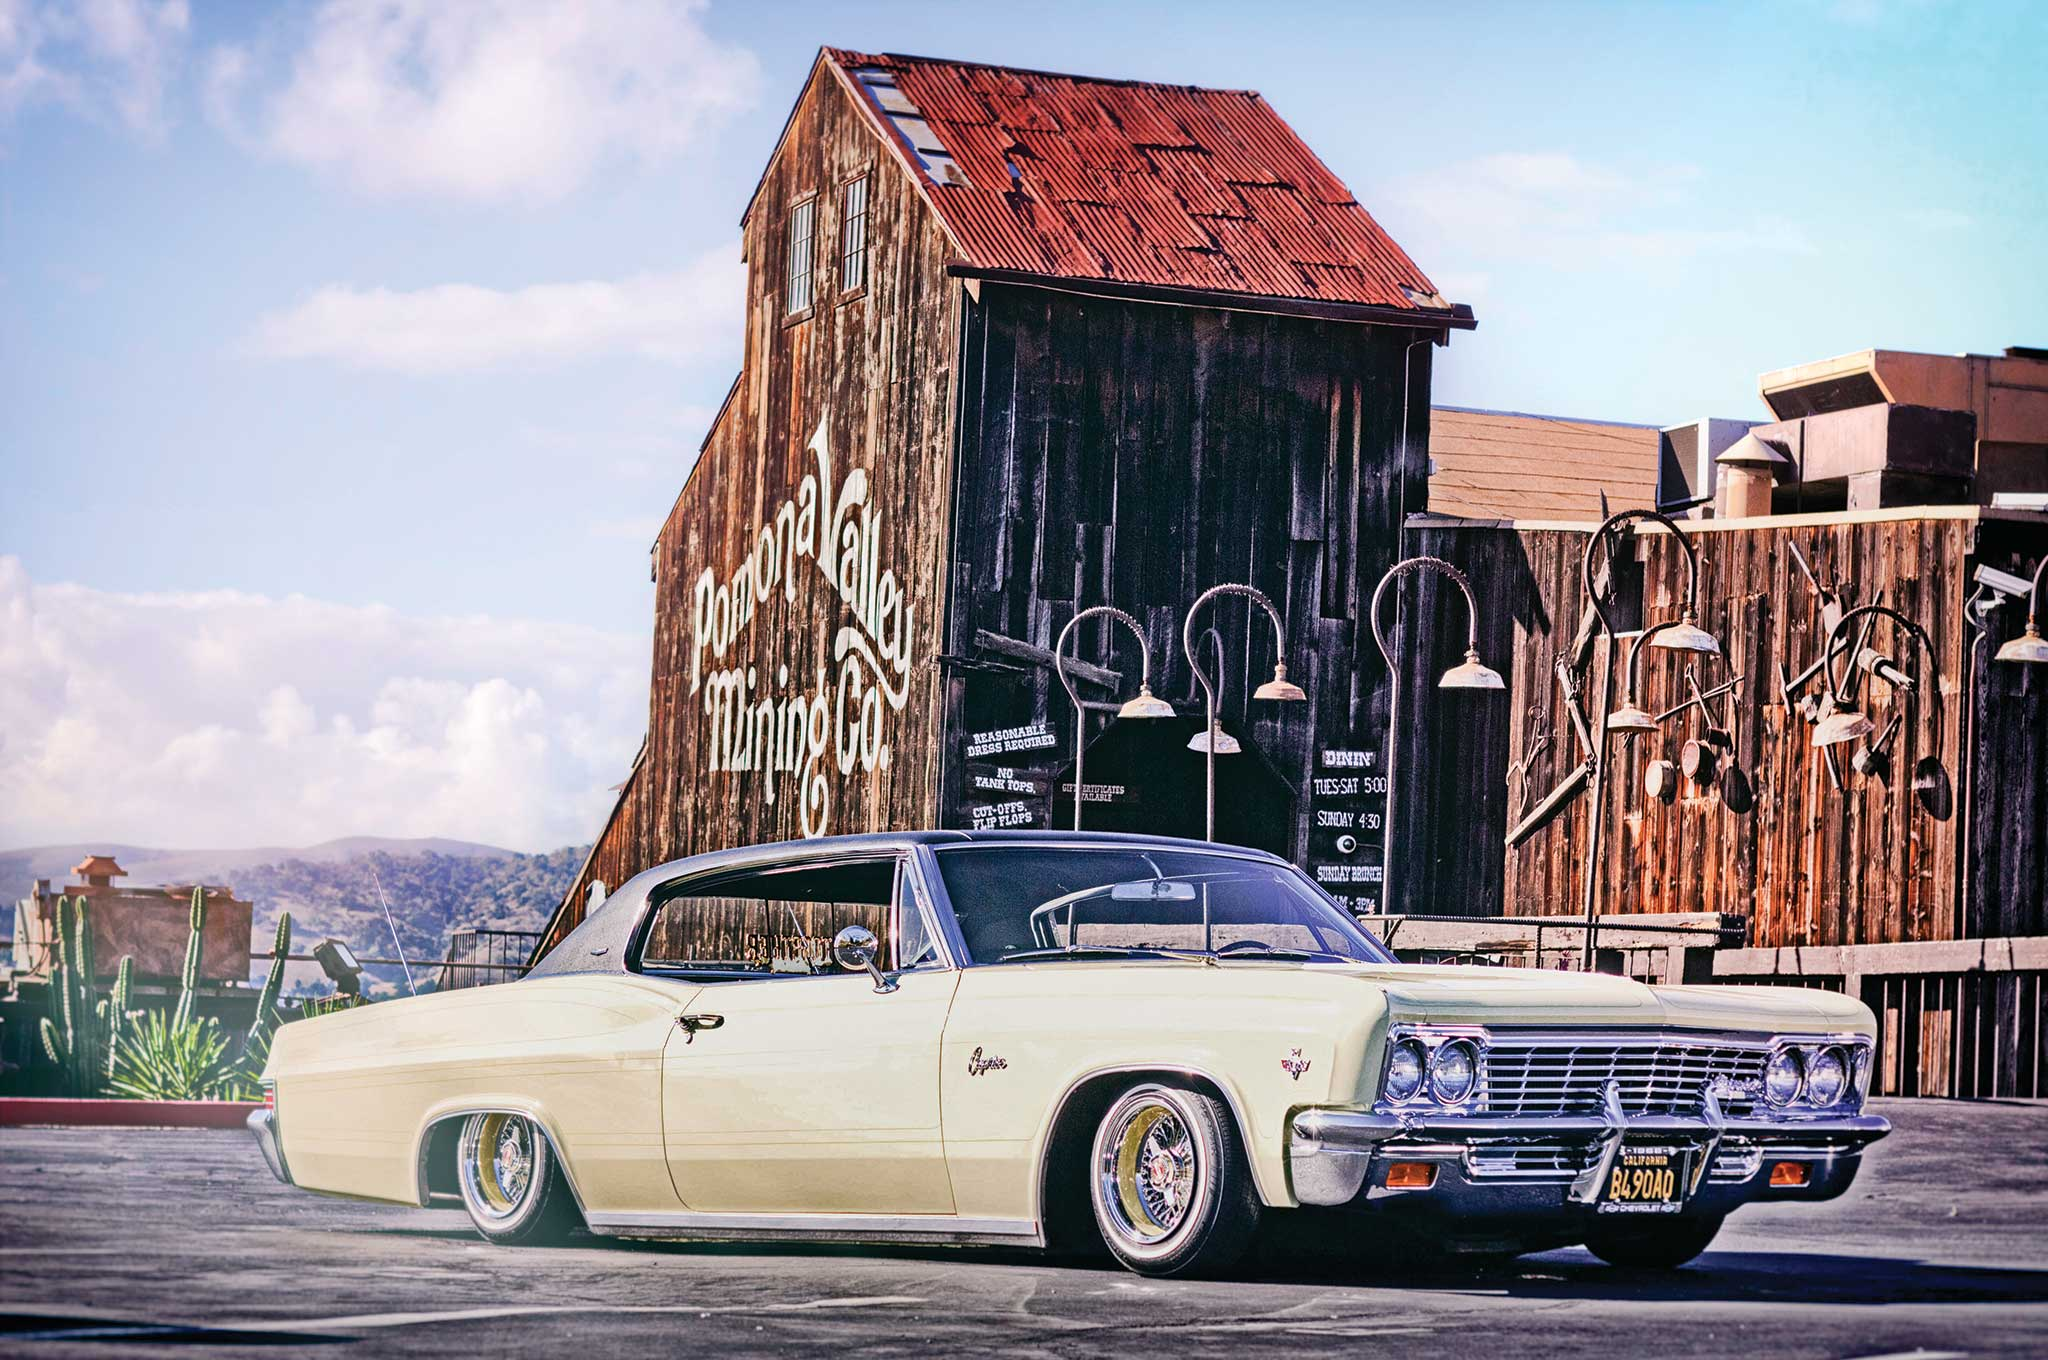 1966 Chevrolet Caprice - Hooked on a Feeling - Lowrider